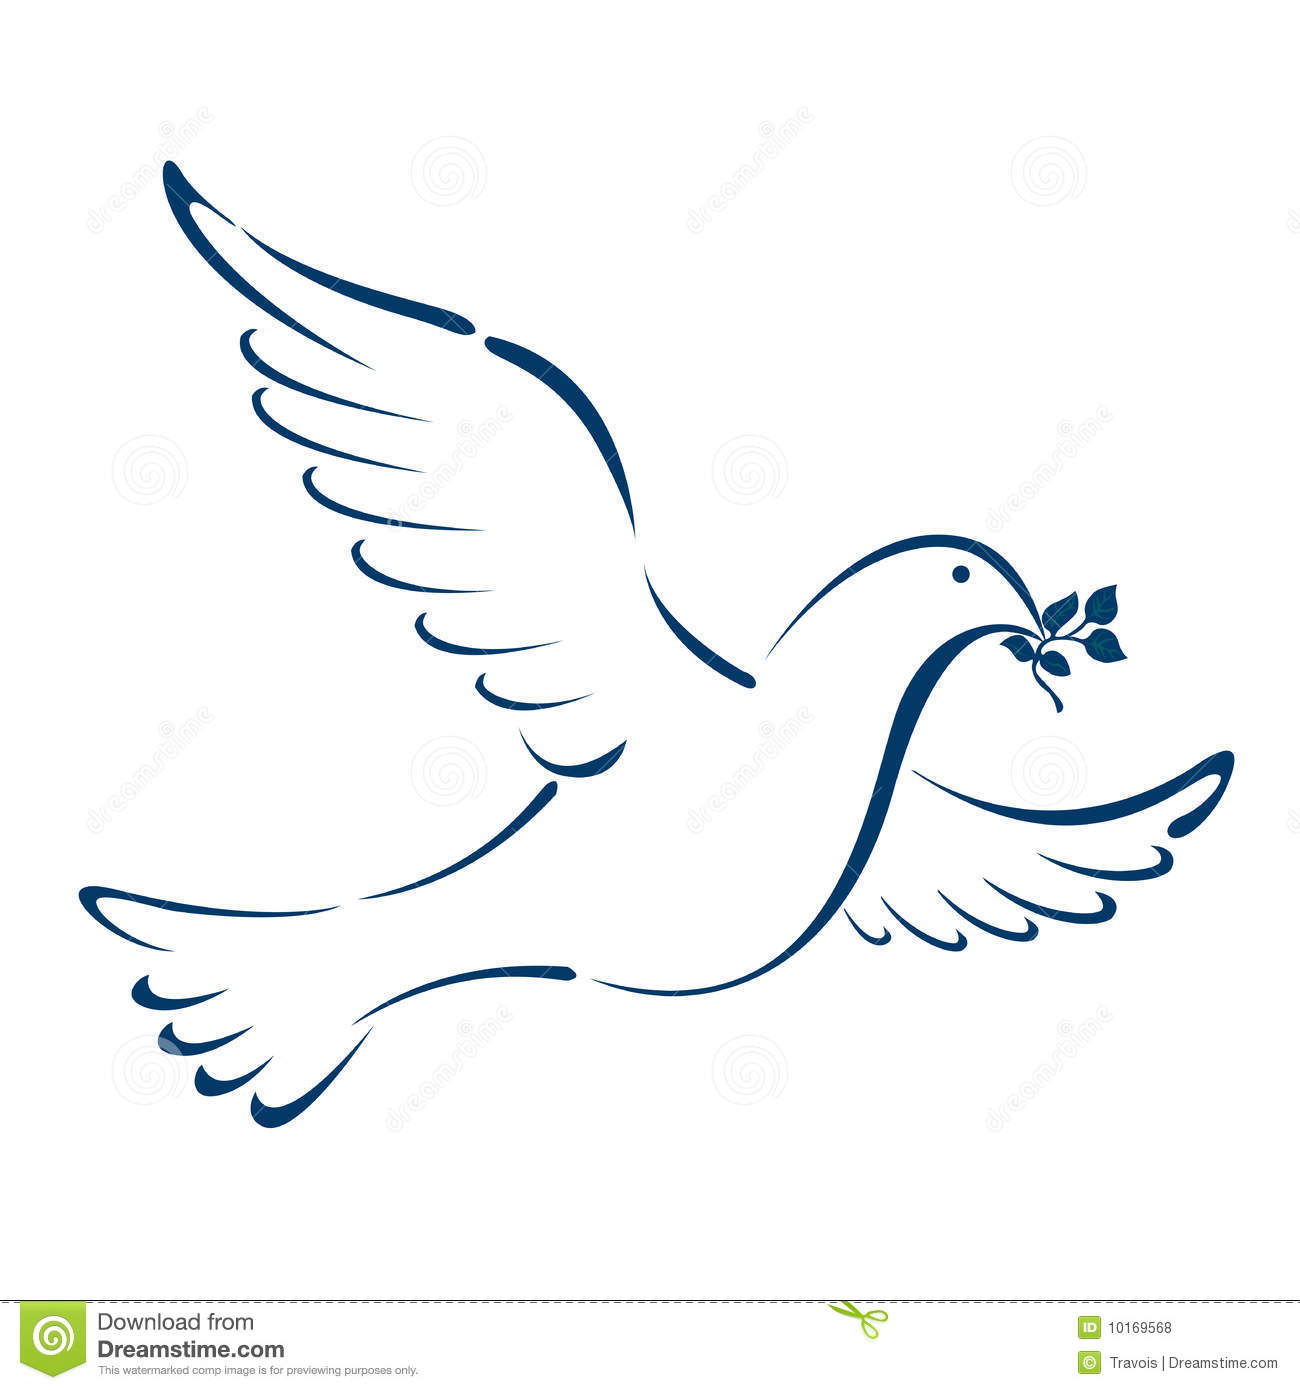 Dove illustration isolated on white background.